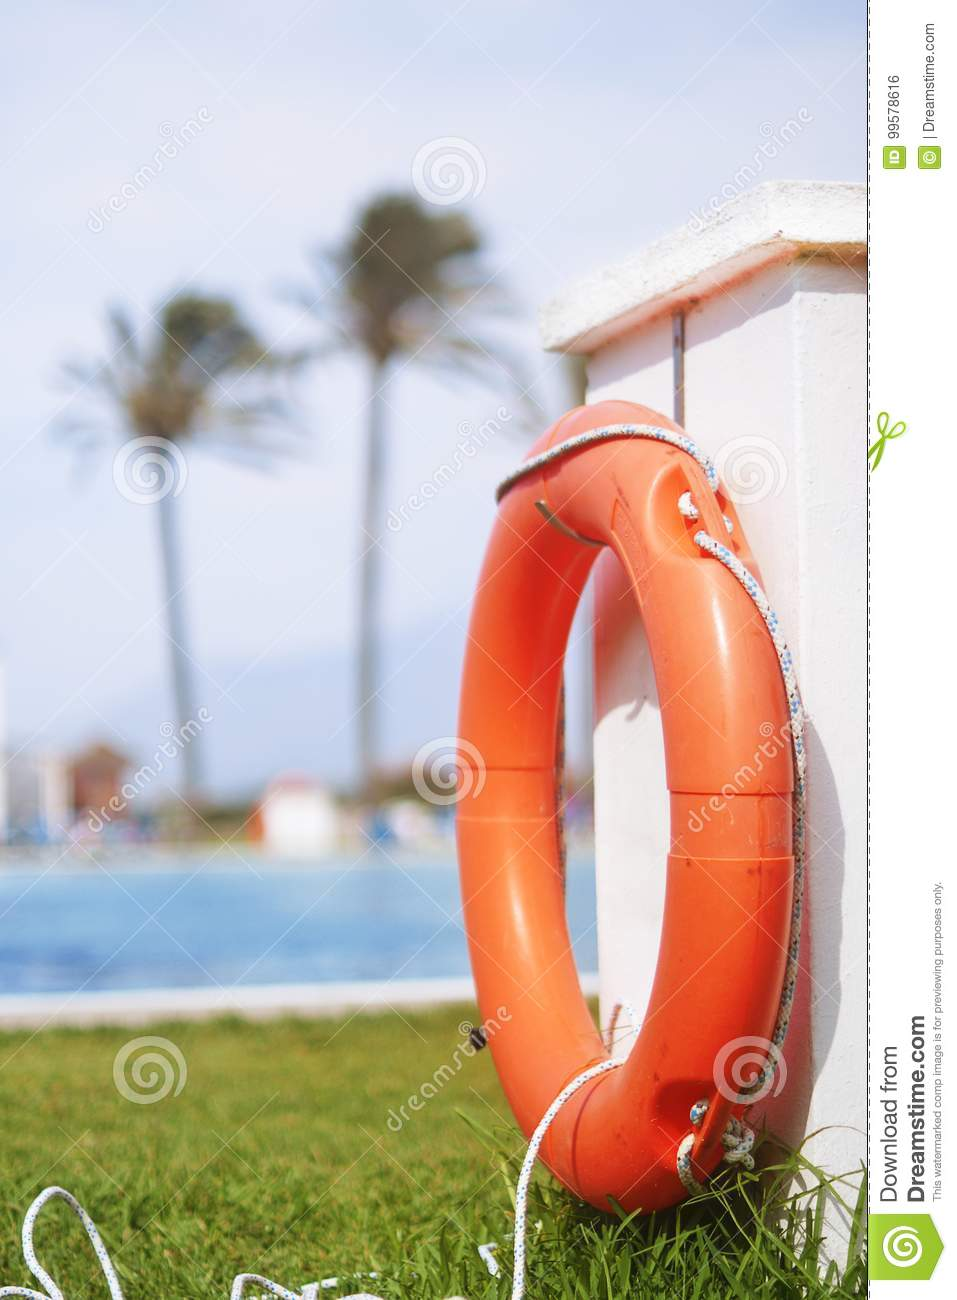 Safety Equipment, Red Lifebuoy Pool Ring Float, Ring ...